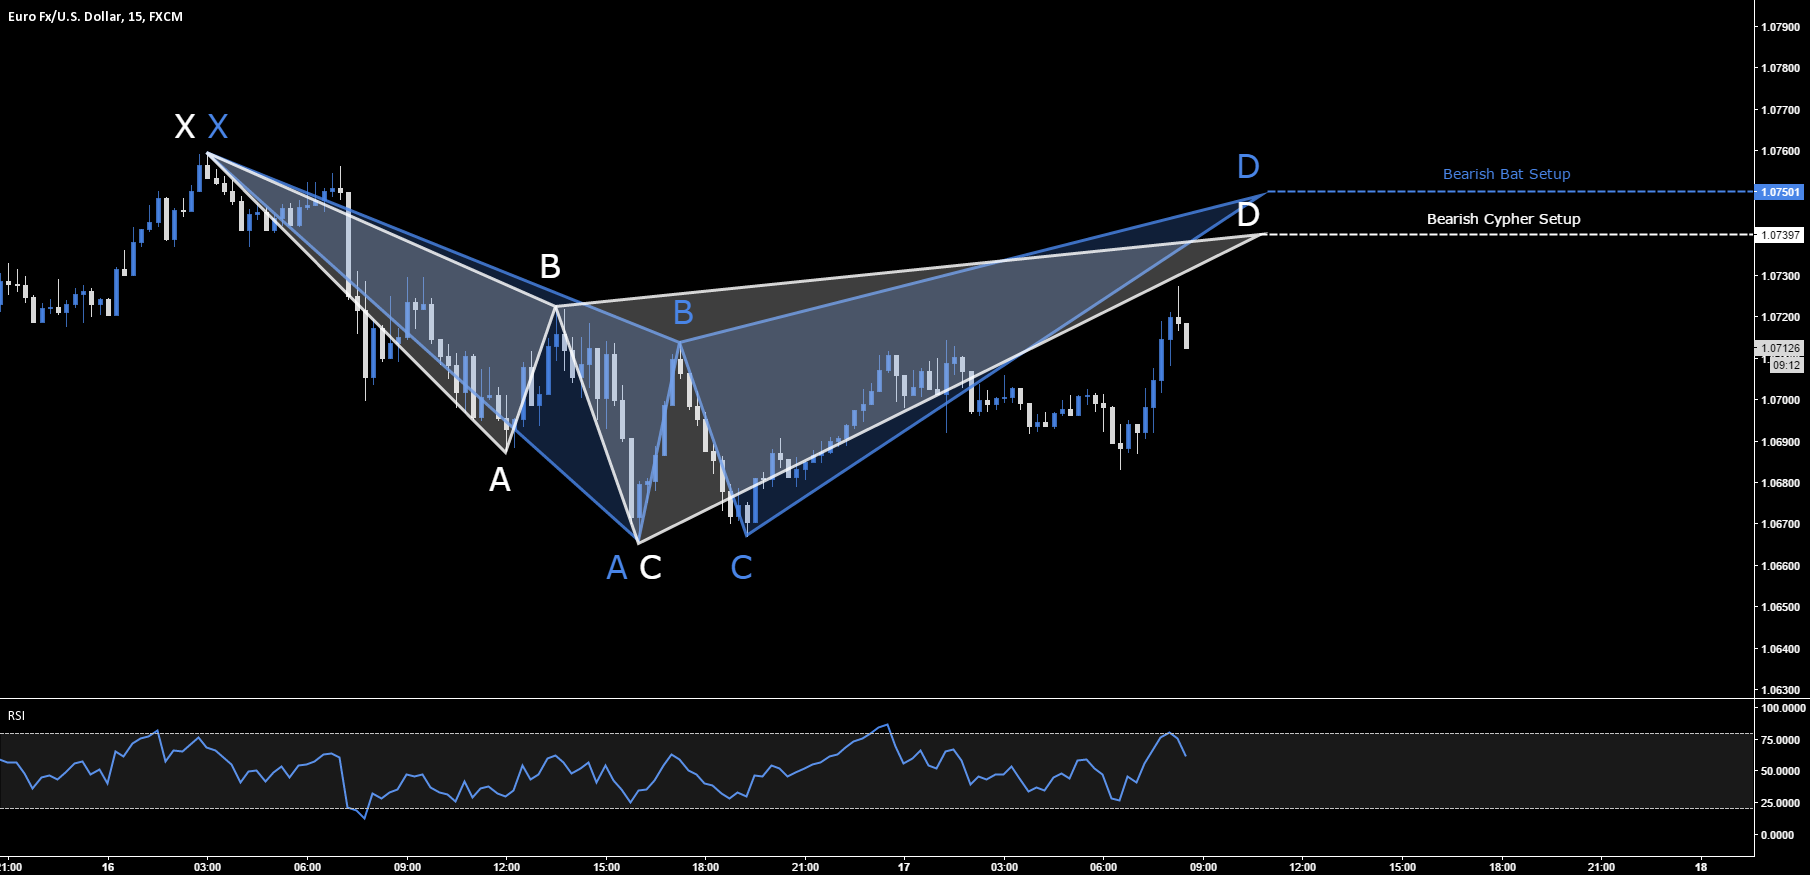 EUR.USD - Bearish Bat & Cypher Setup - 1.0750 & 1.0739